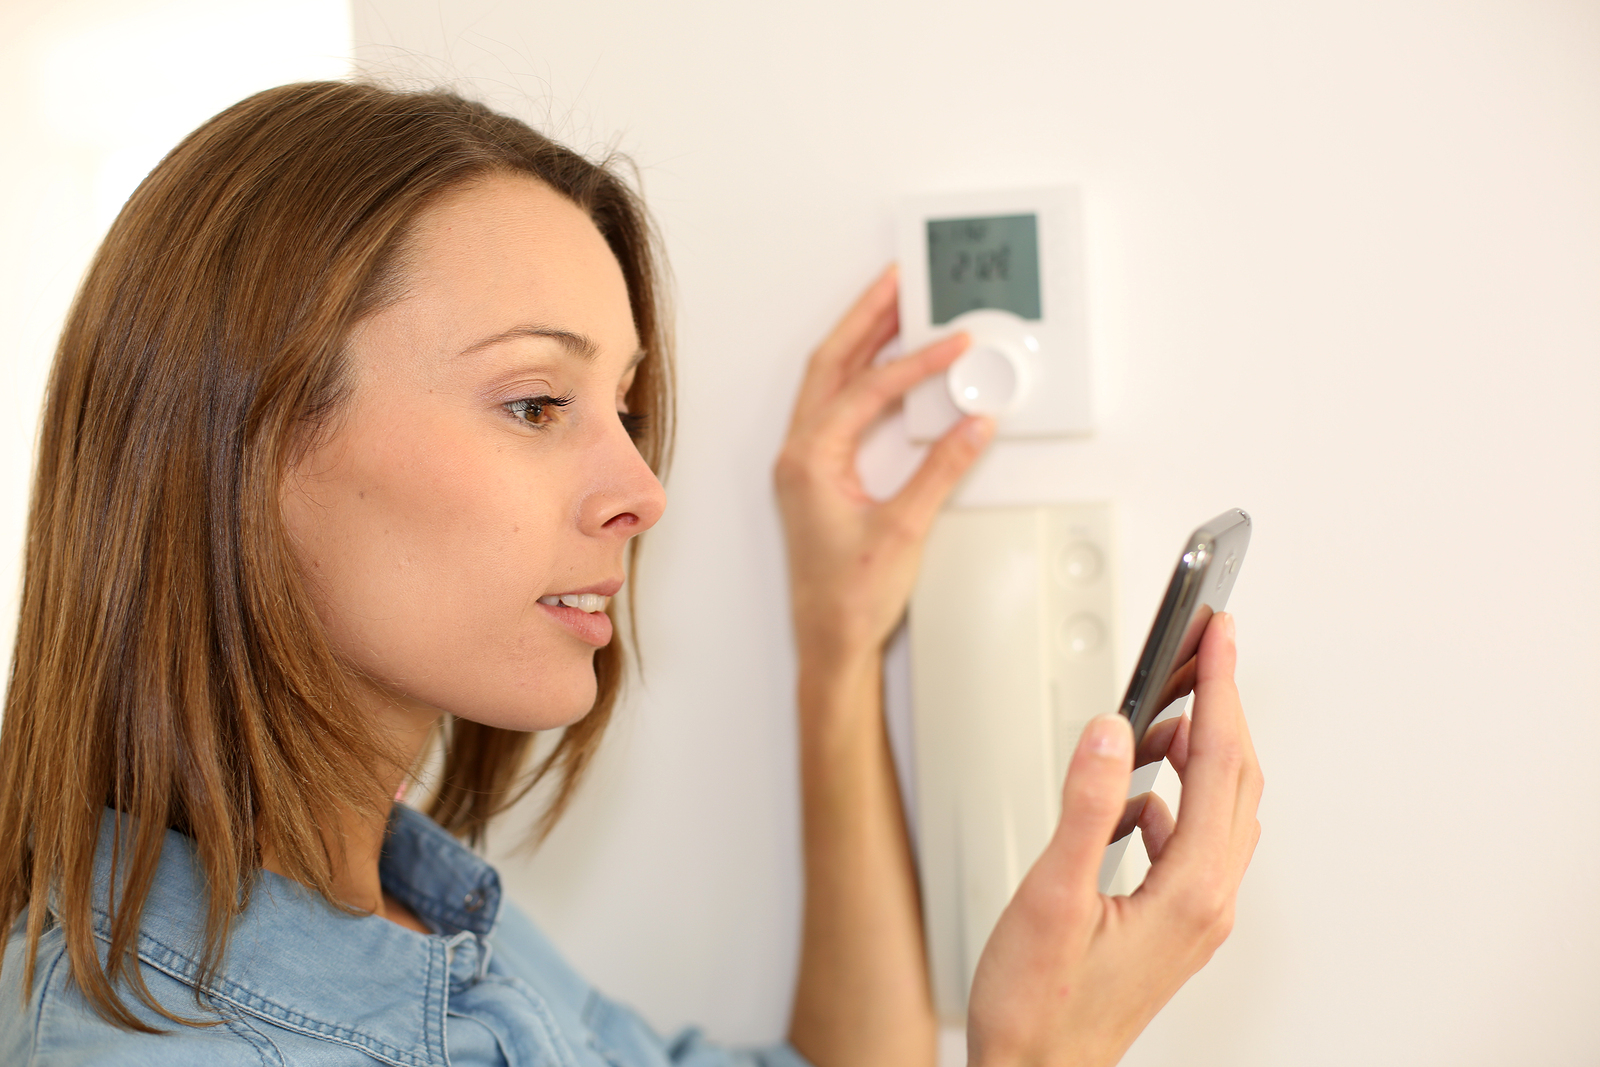 Woman regulating heater temperature